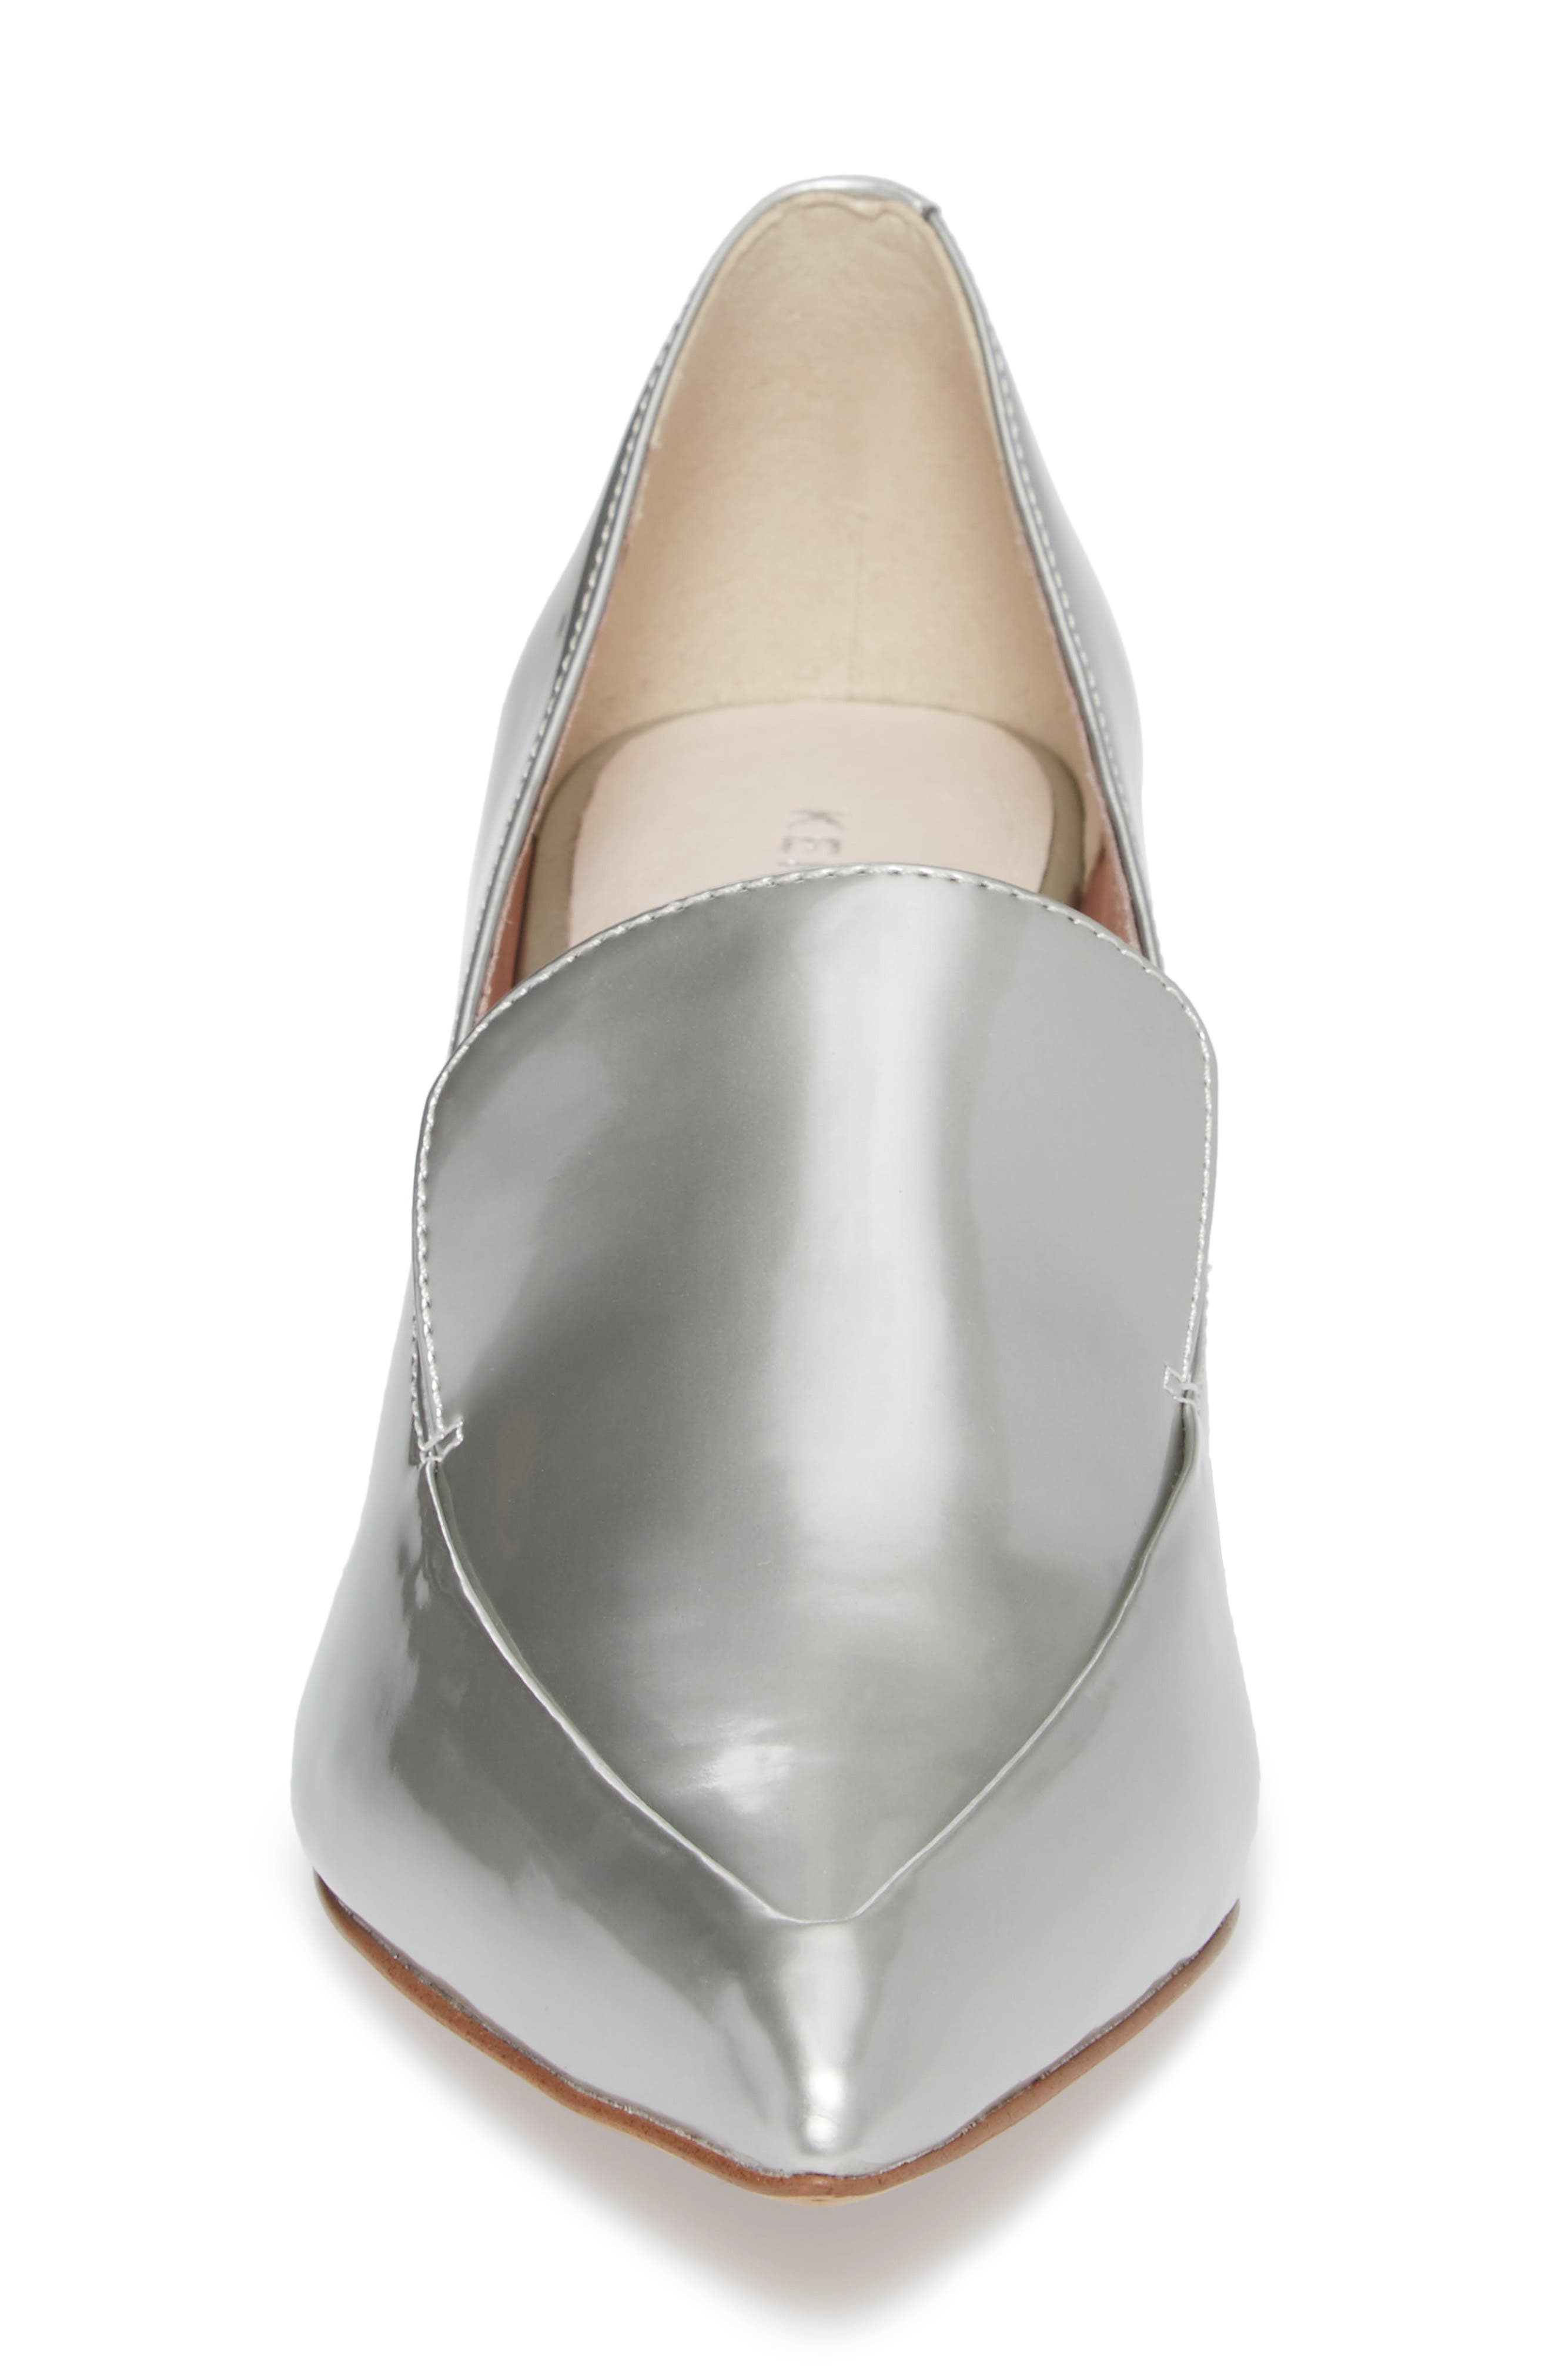 Shea Loafer Pump,                             Alternate thumbnail 4, color,                             Silver Metallic Leather